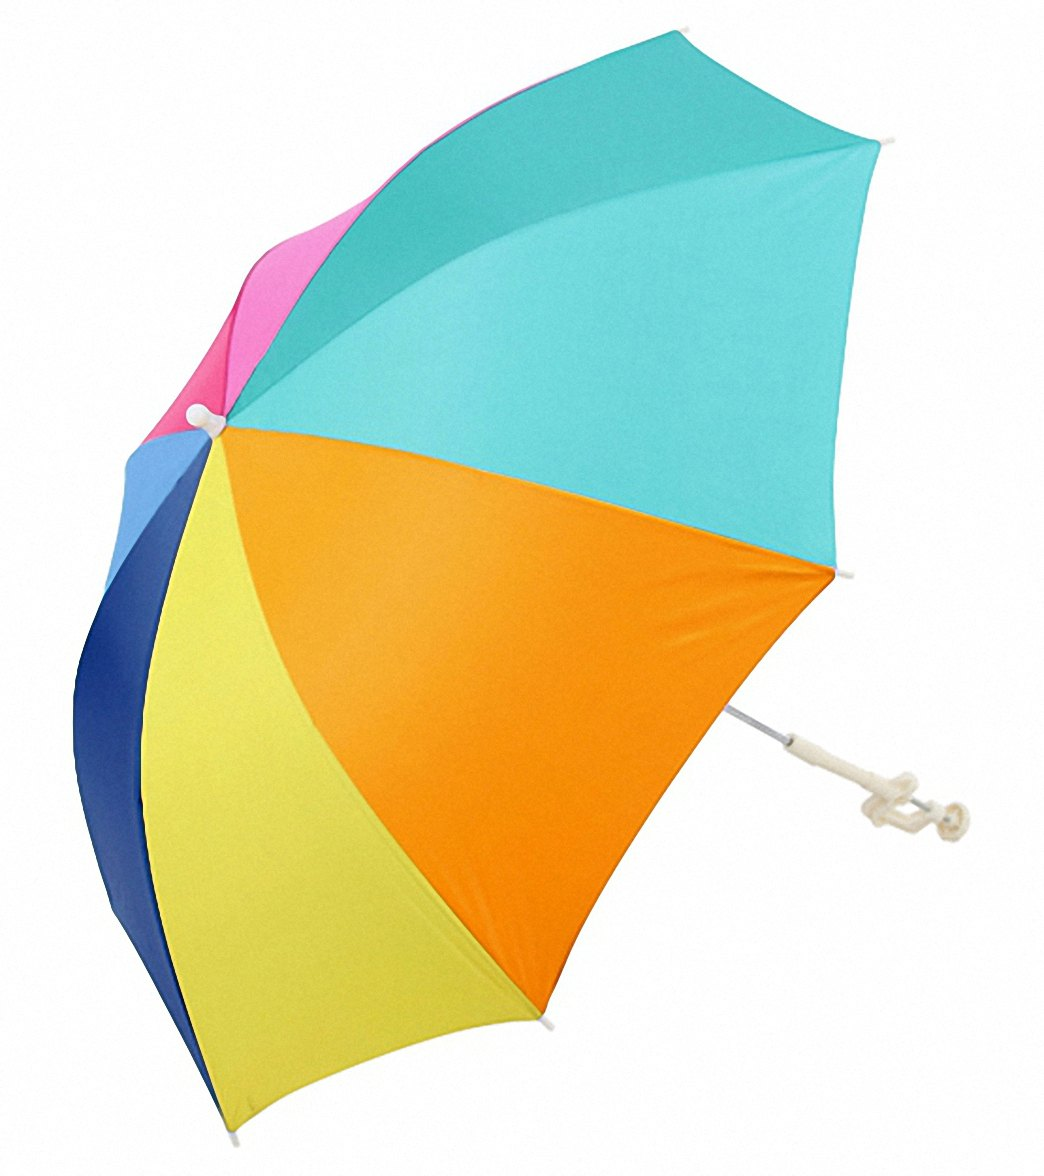 Clamp On Chair Umbrella Rio Brands Beach Chair Clamp On Umbrella Spf50 At